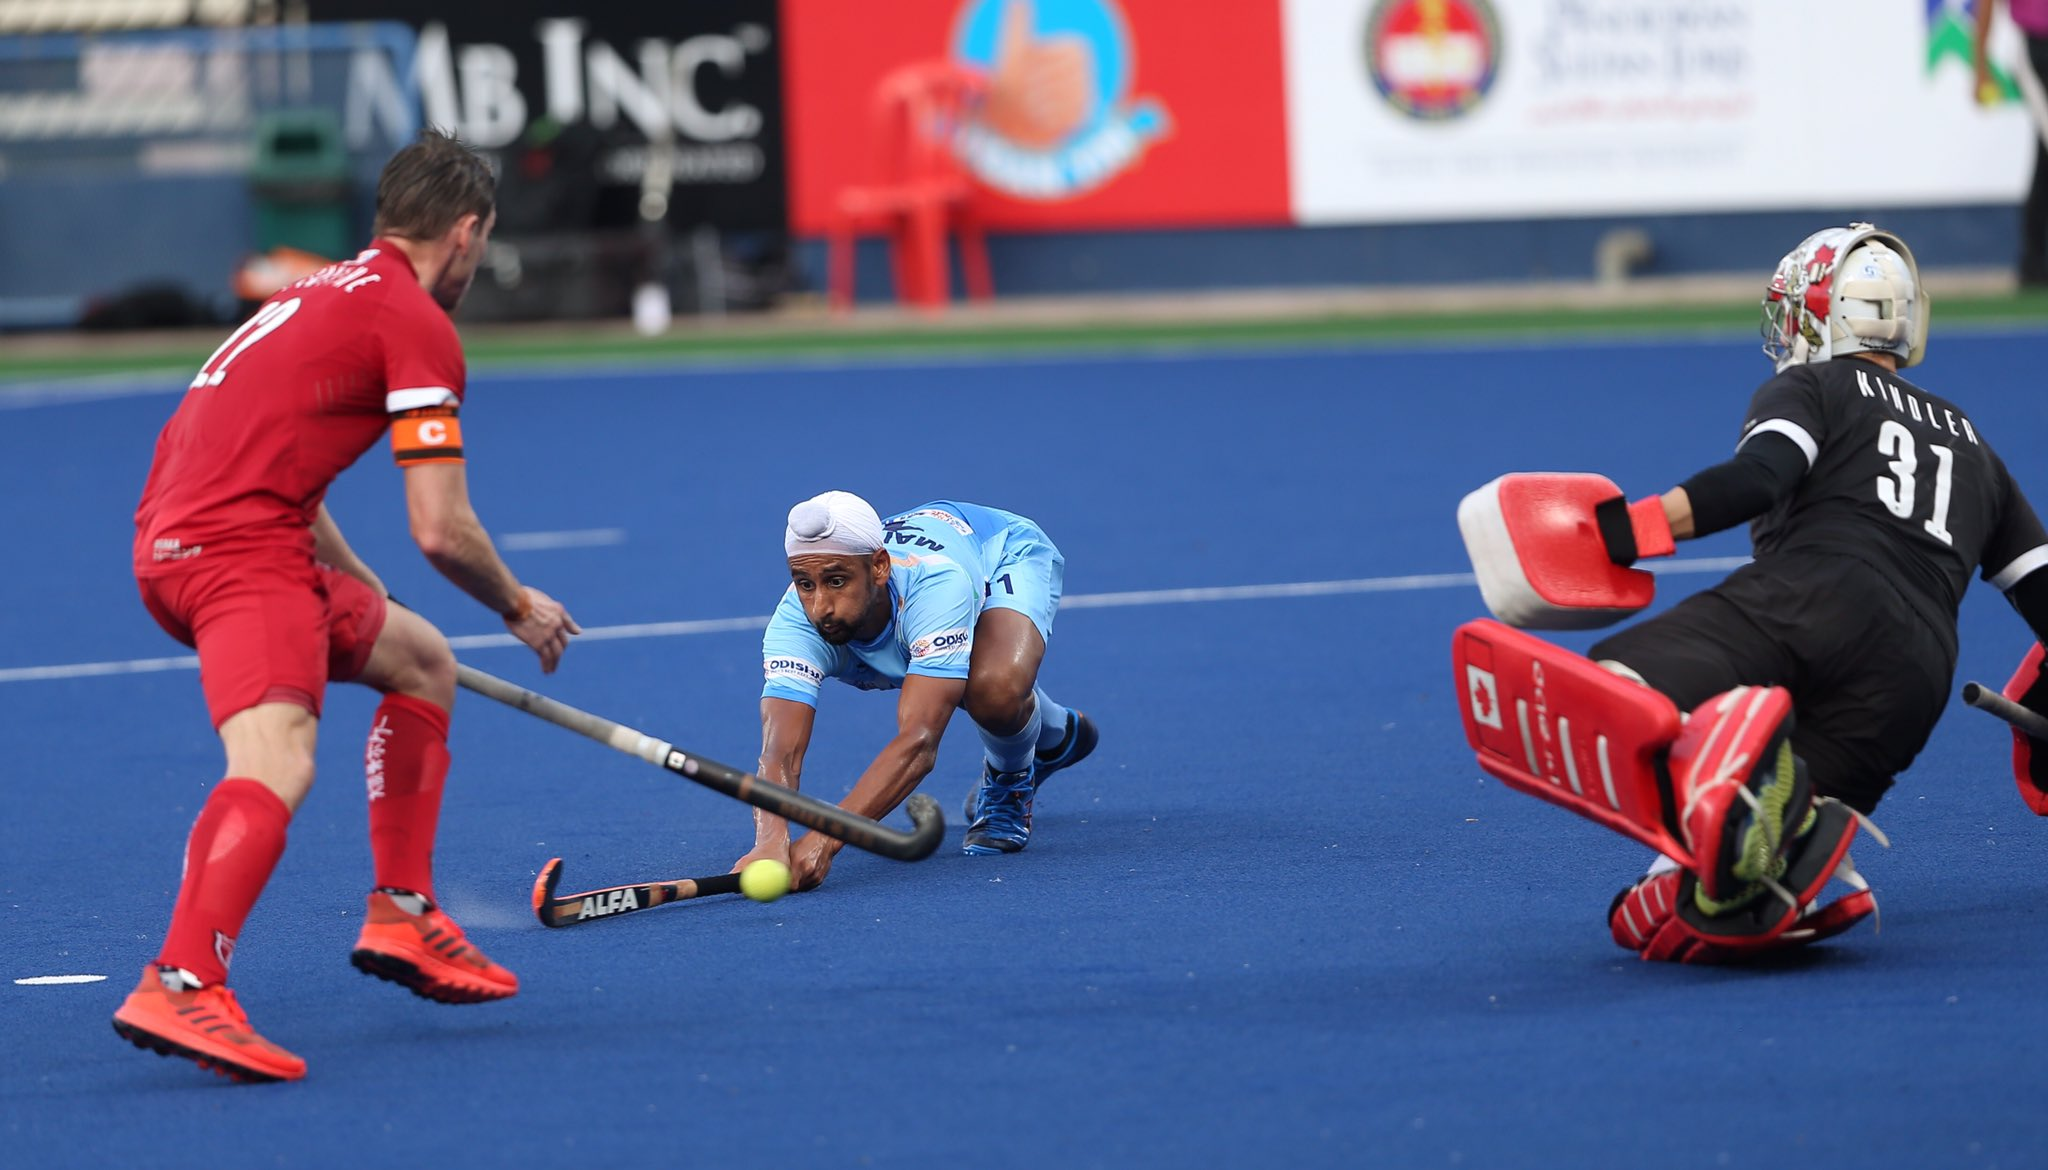 India booked their place in the finals with a win over Canada (Image Credits- Azlan Shah Cup Twitter)